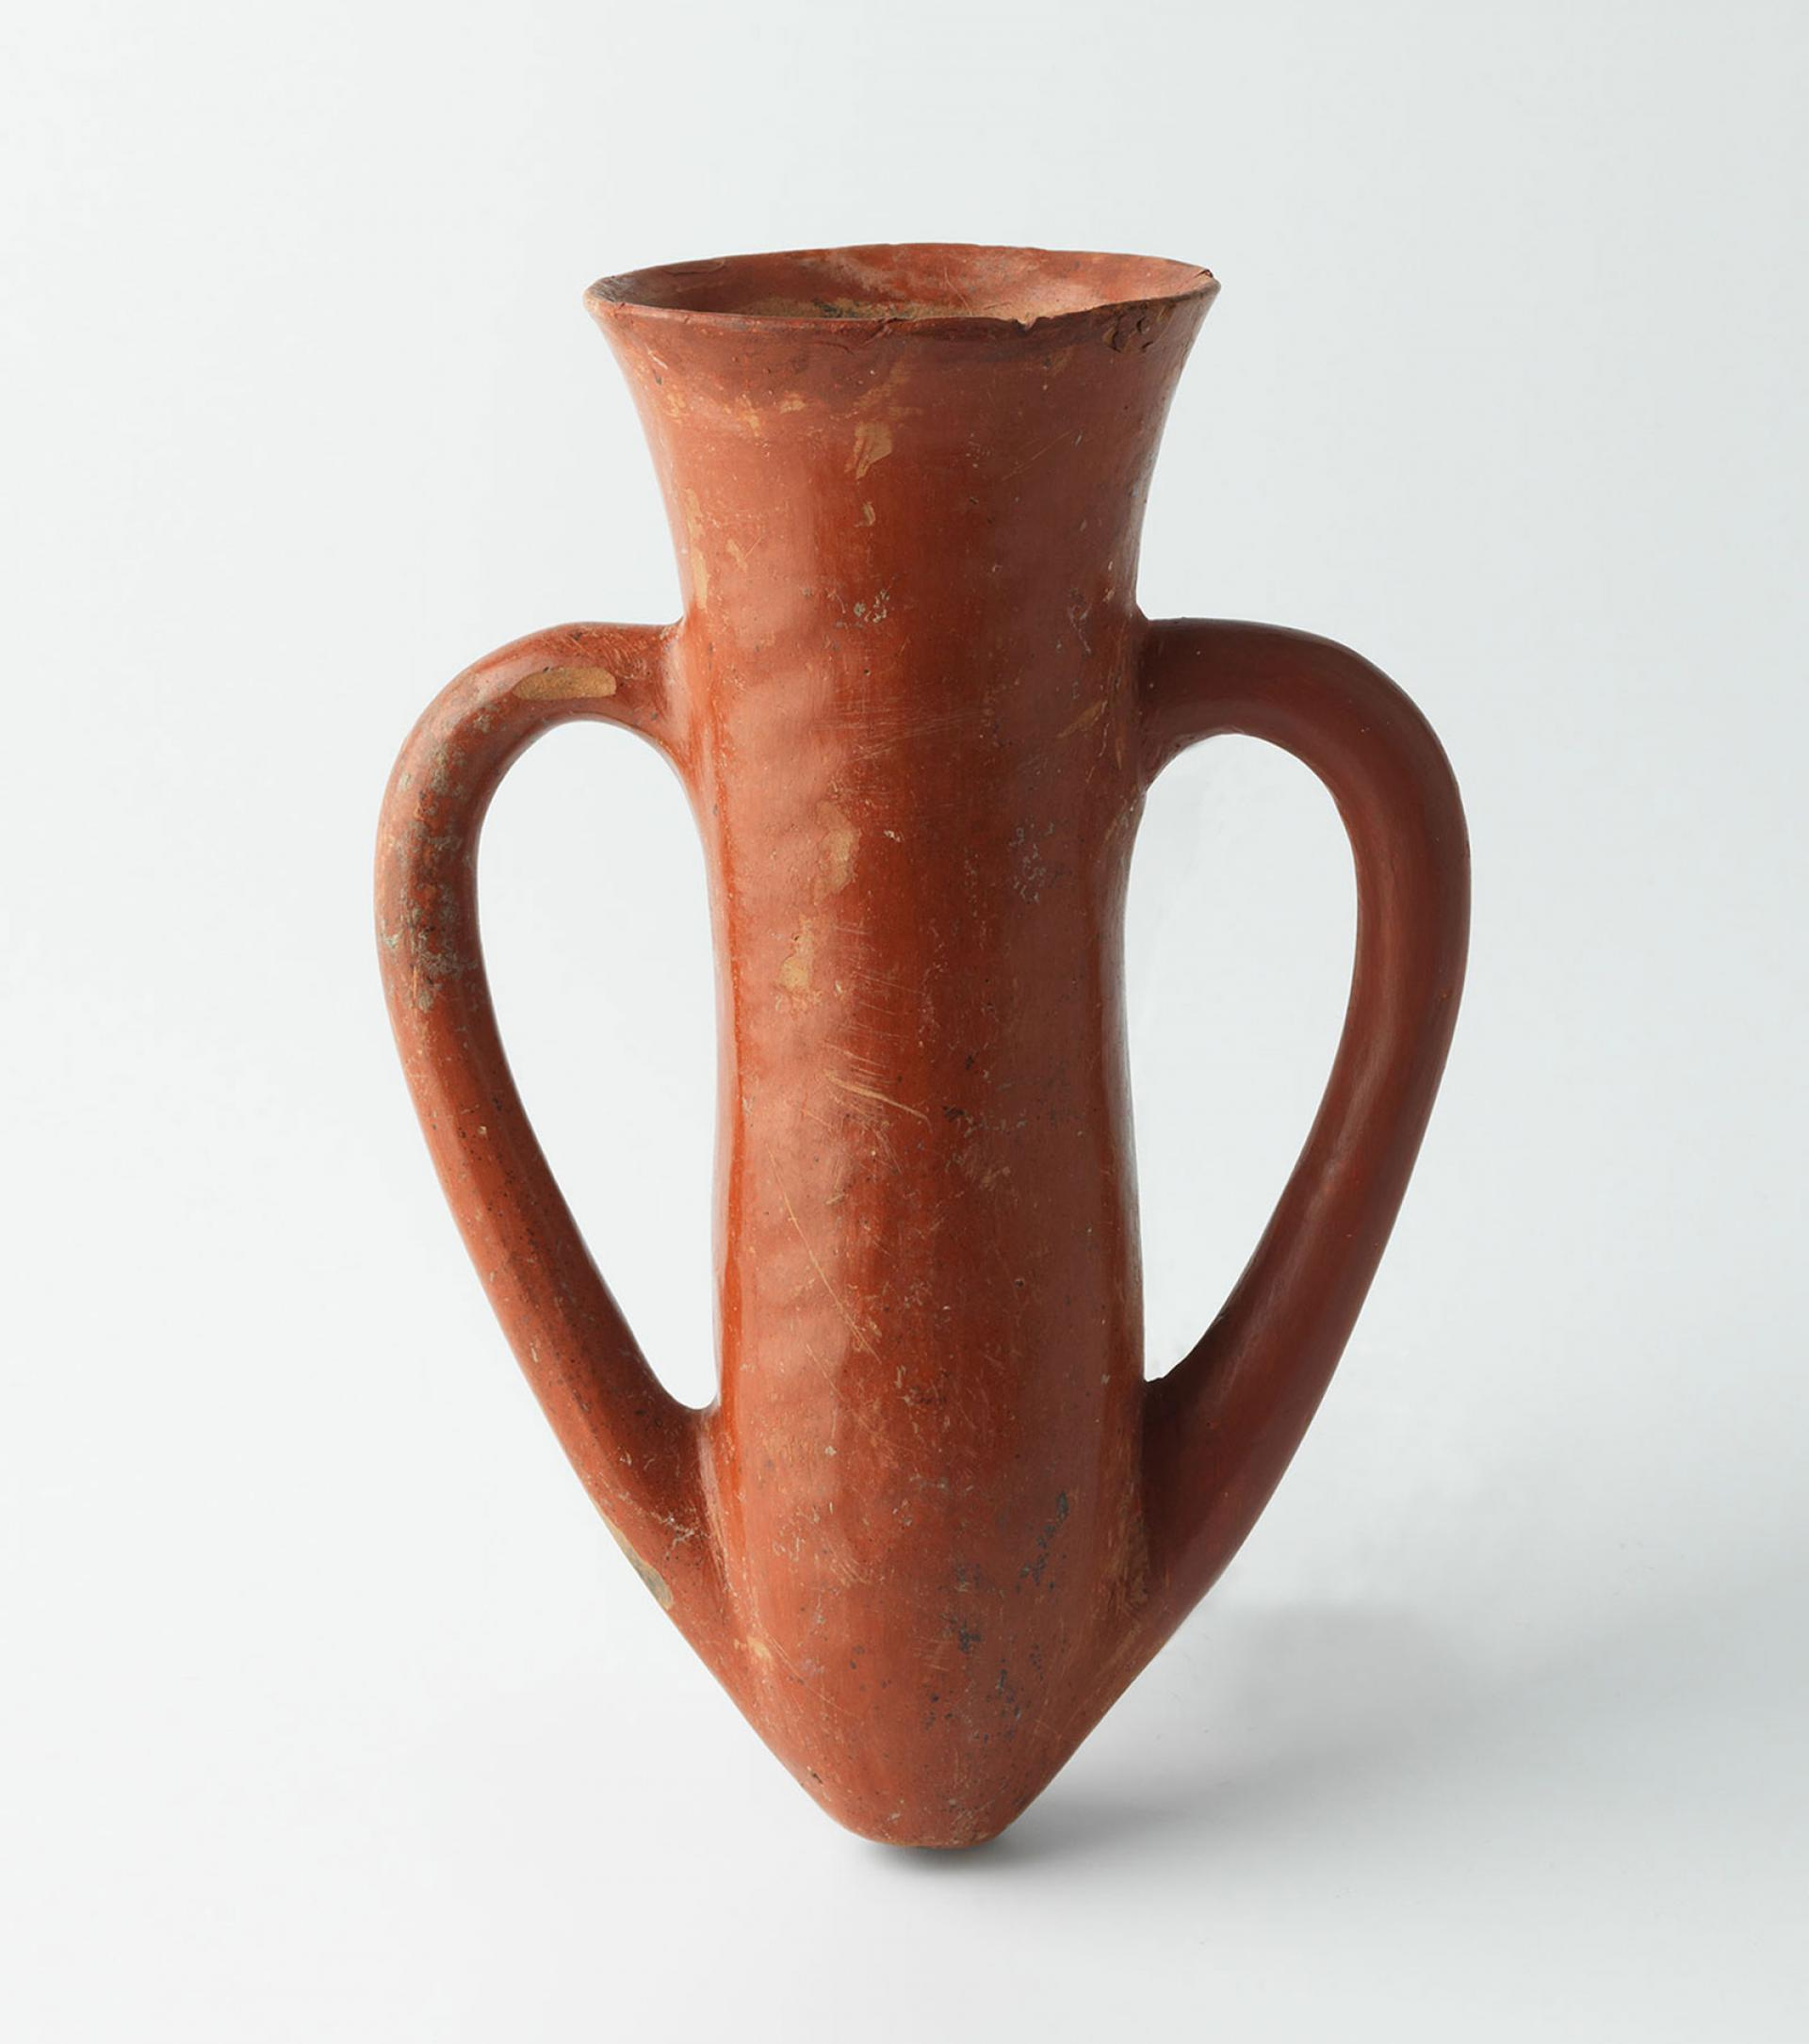 SHM 6555 - Depas Terracotta Early Bronze Age II Last quarter of 3rd millenium BC Central/Western Anatolia